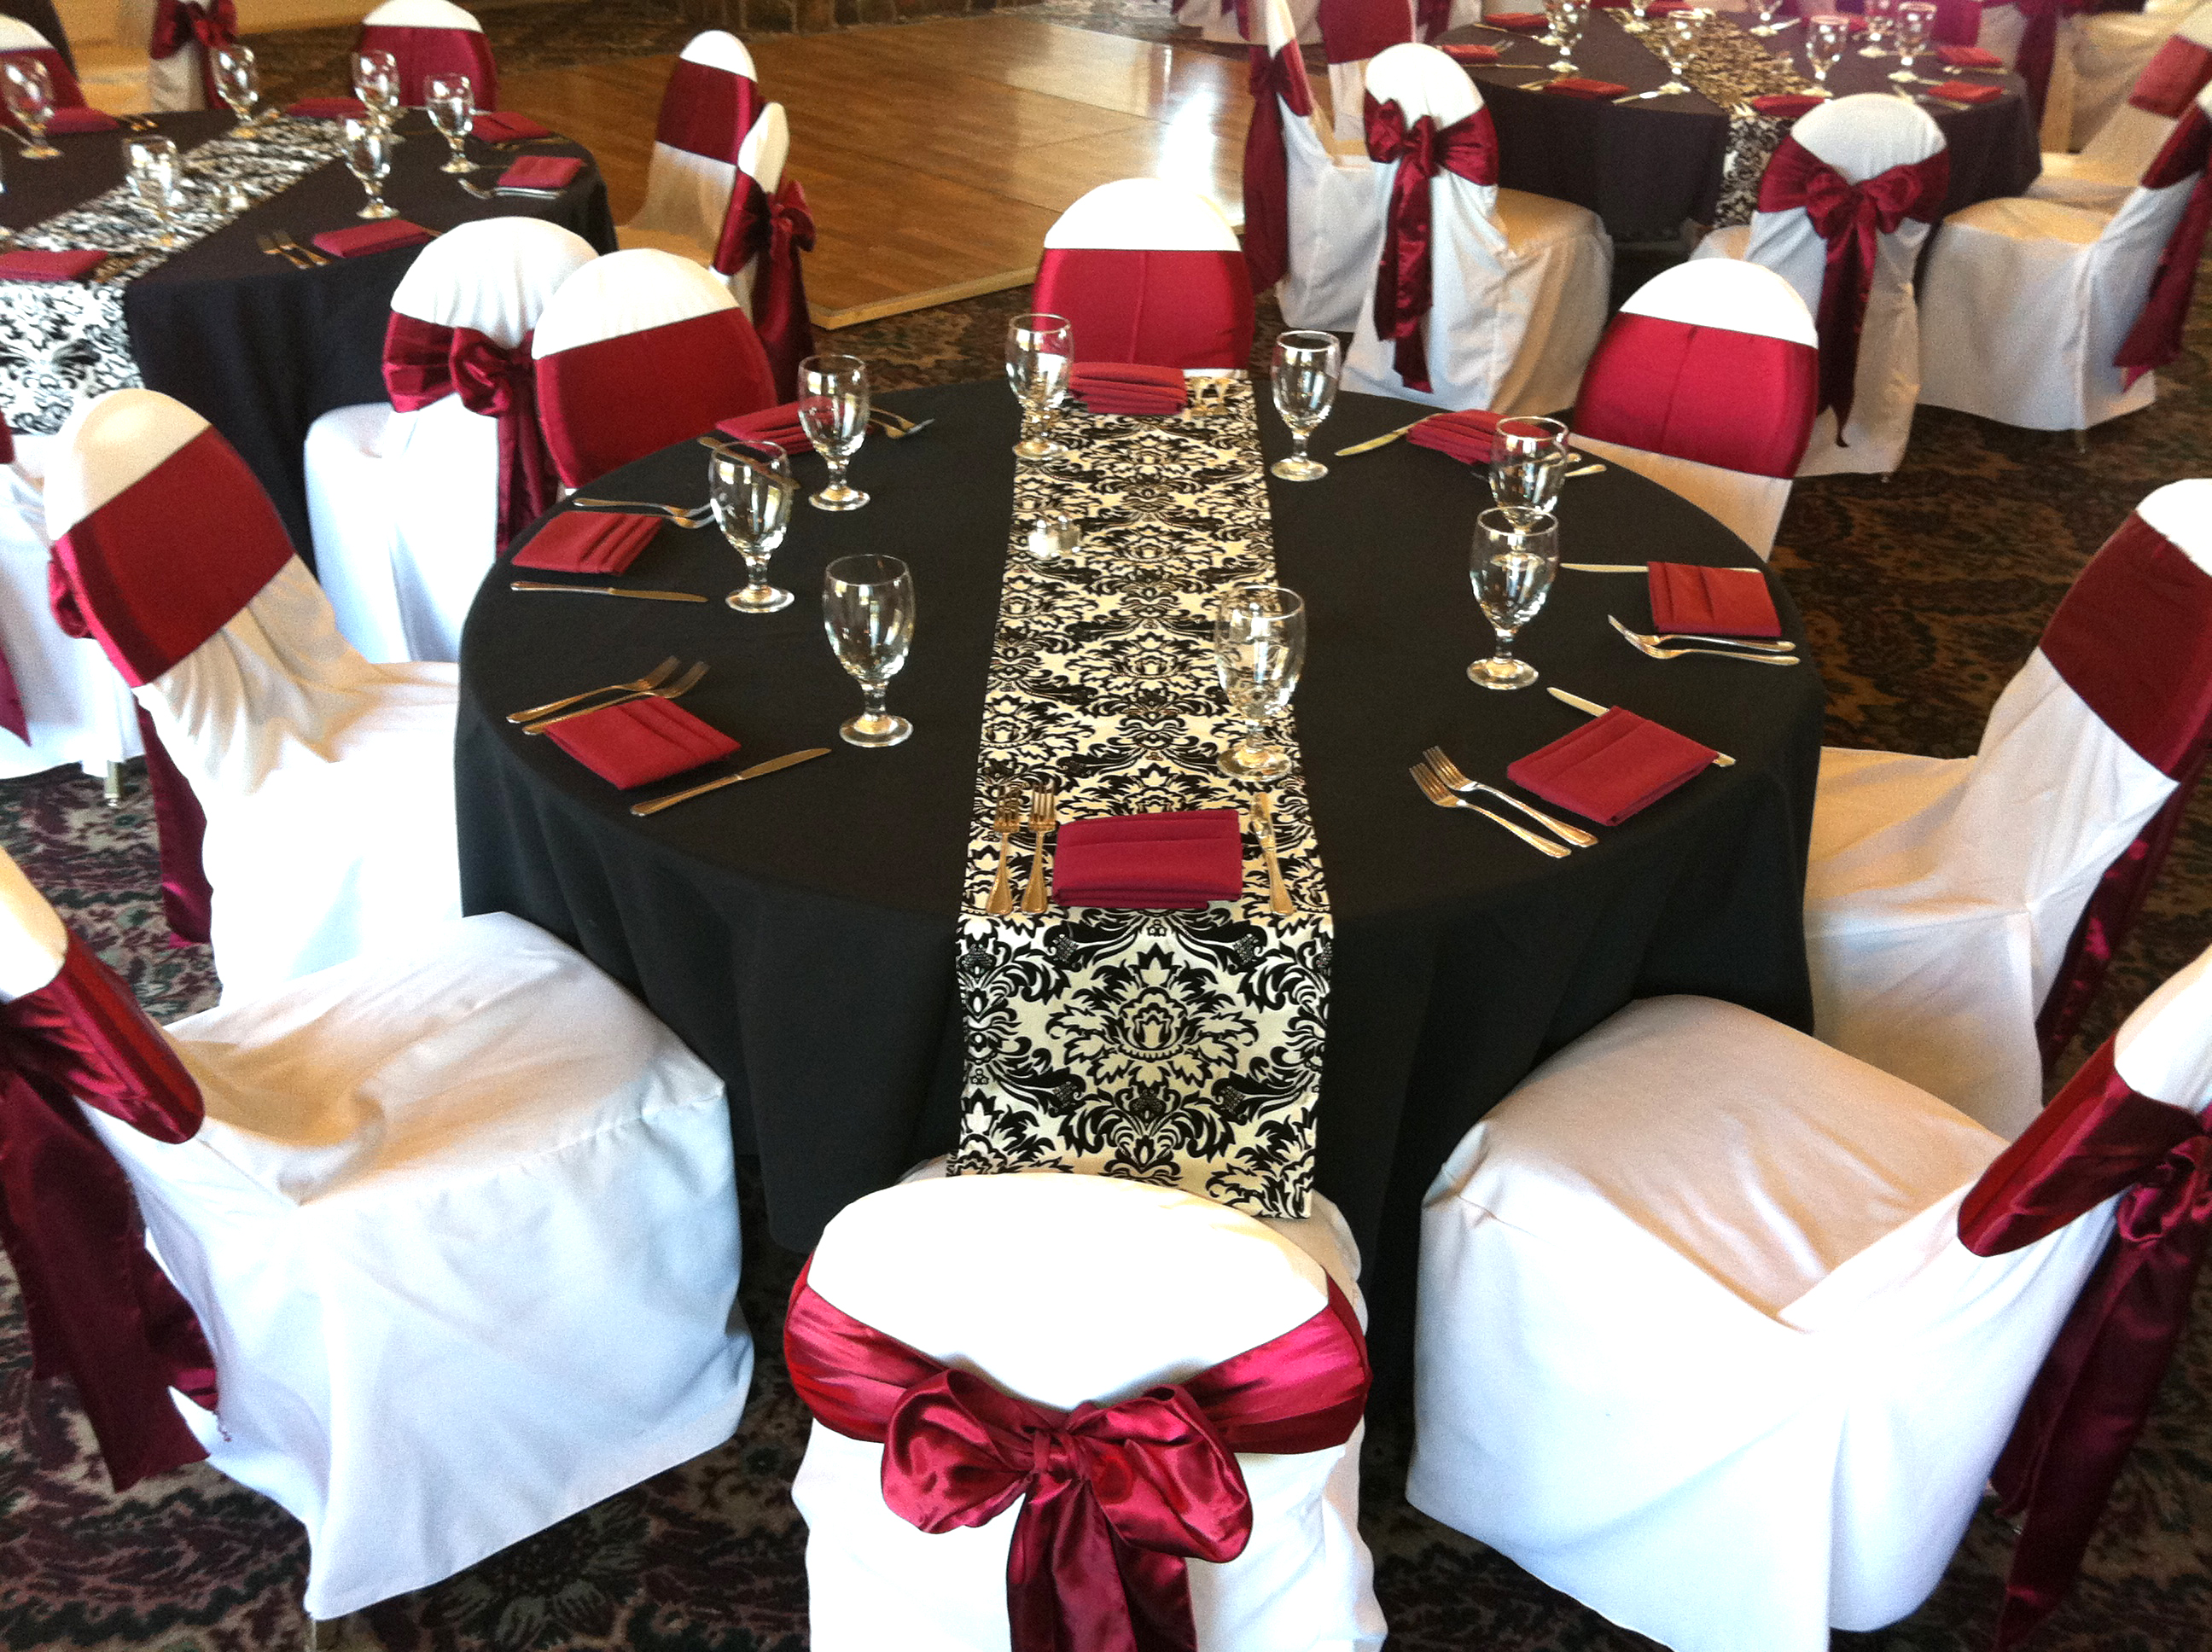 burgundy chair covers wedding rebar spacing weddings at eagle hills golf course